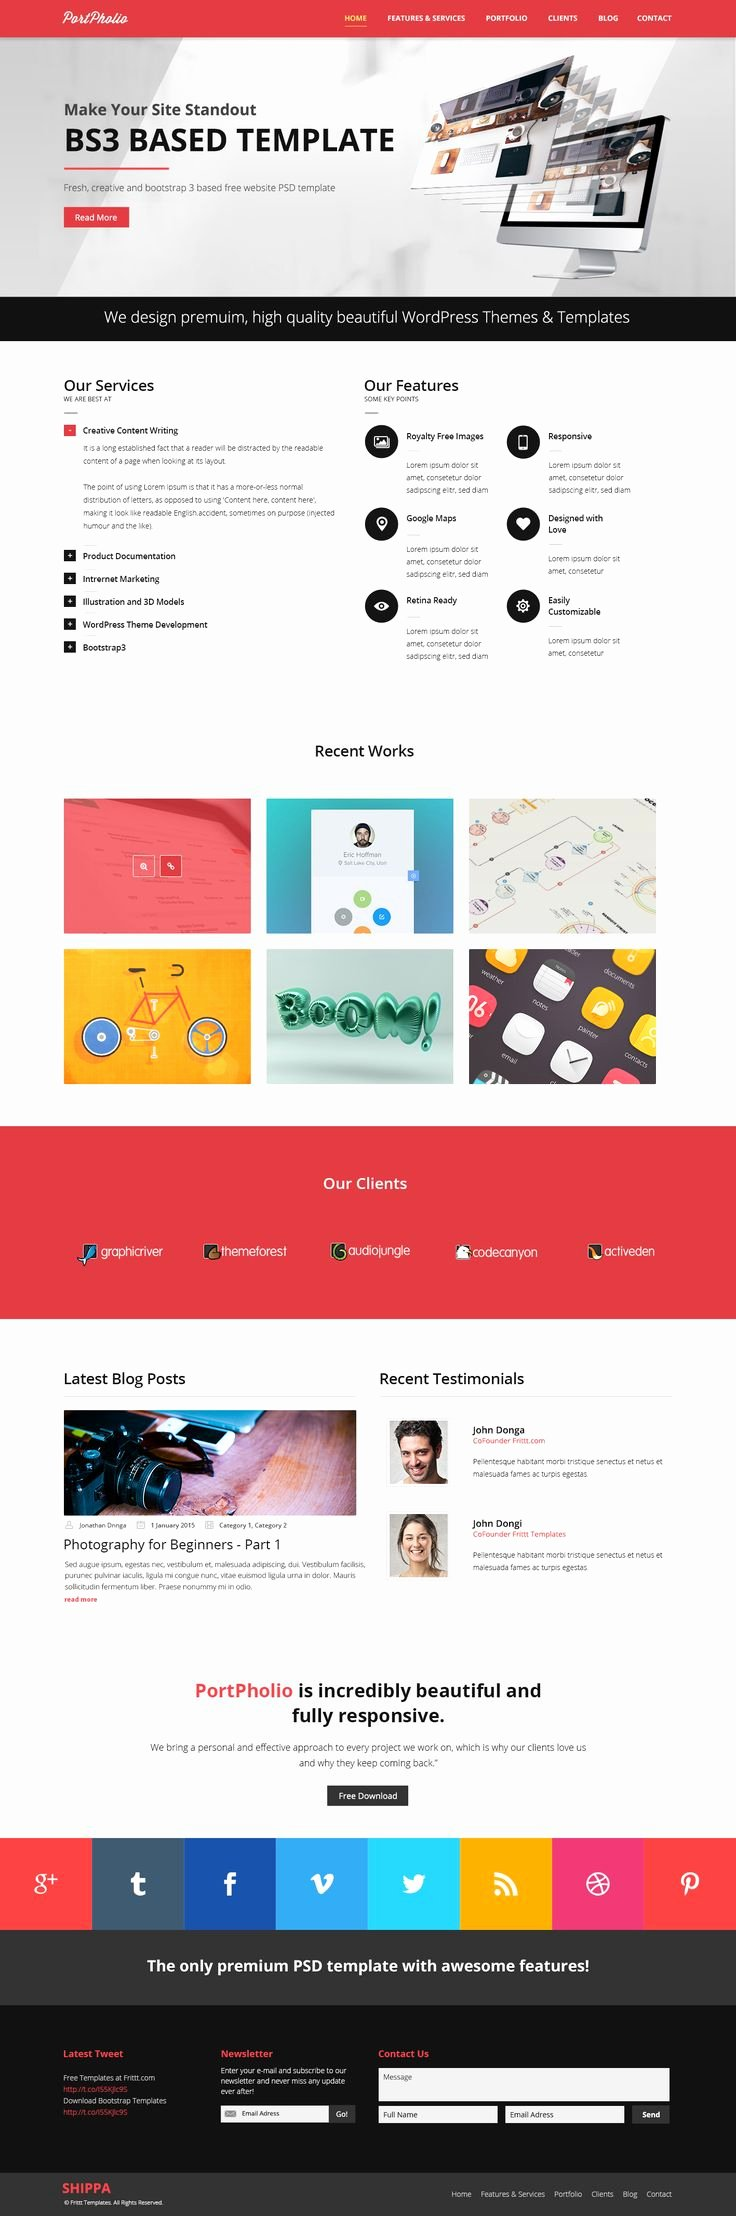 One Page Newsletter Template Awesome 25 Best Images About Free Website Templates On Pinterest